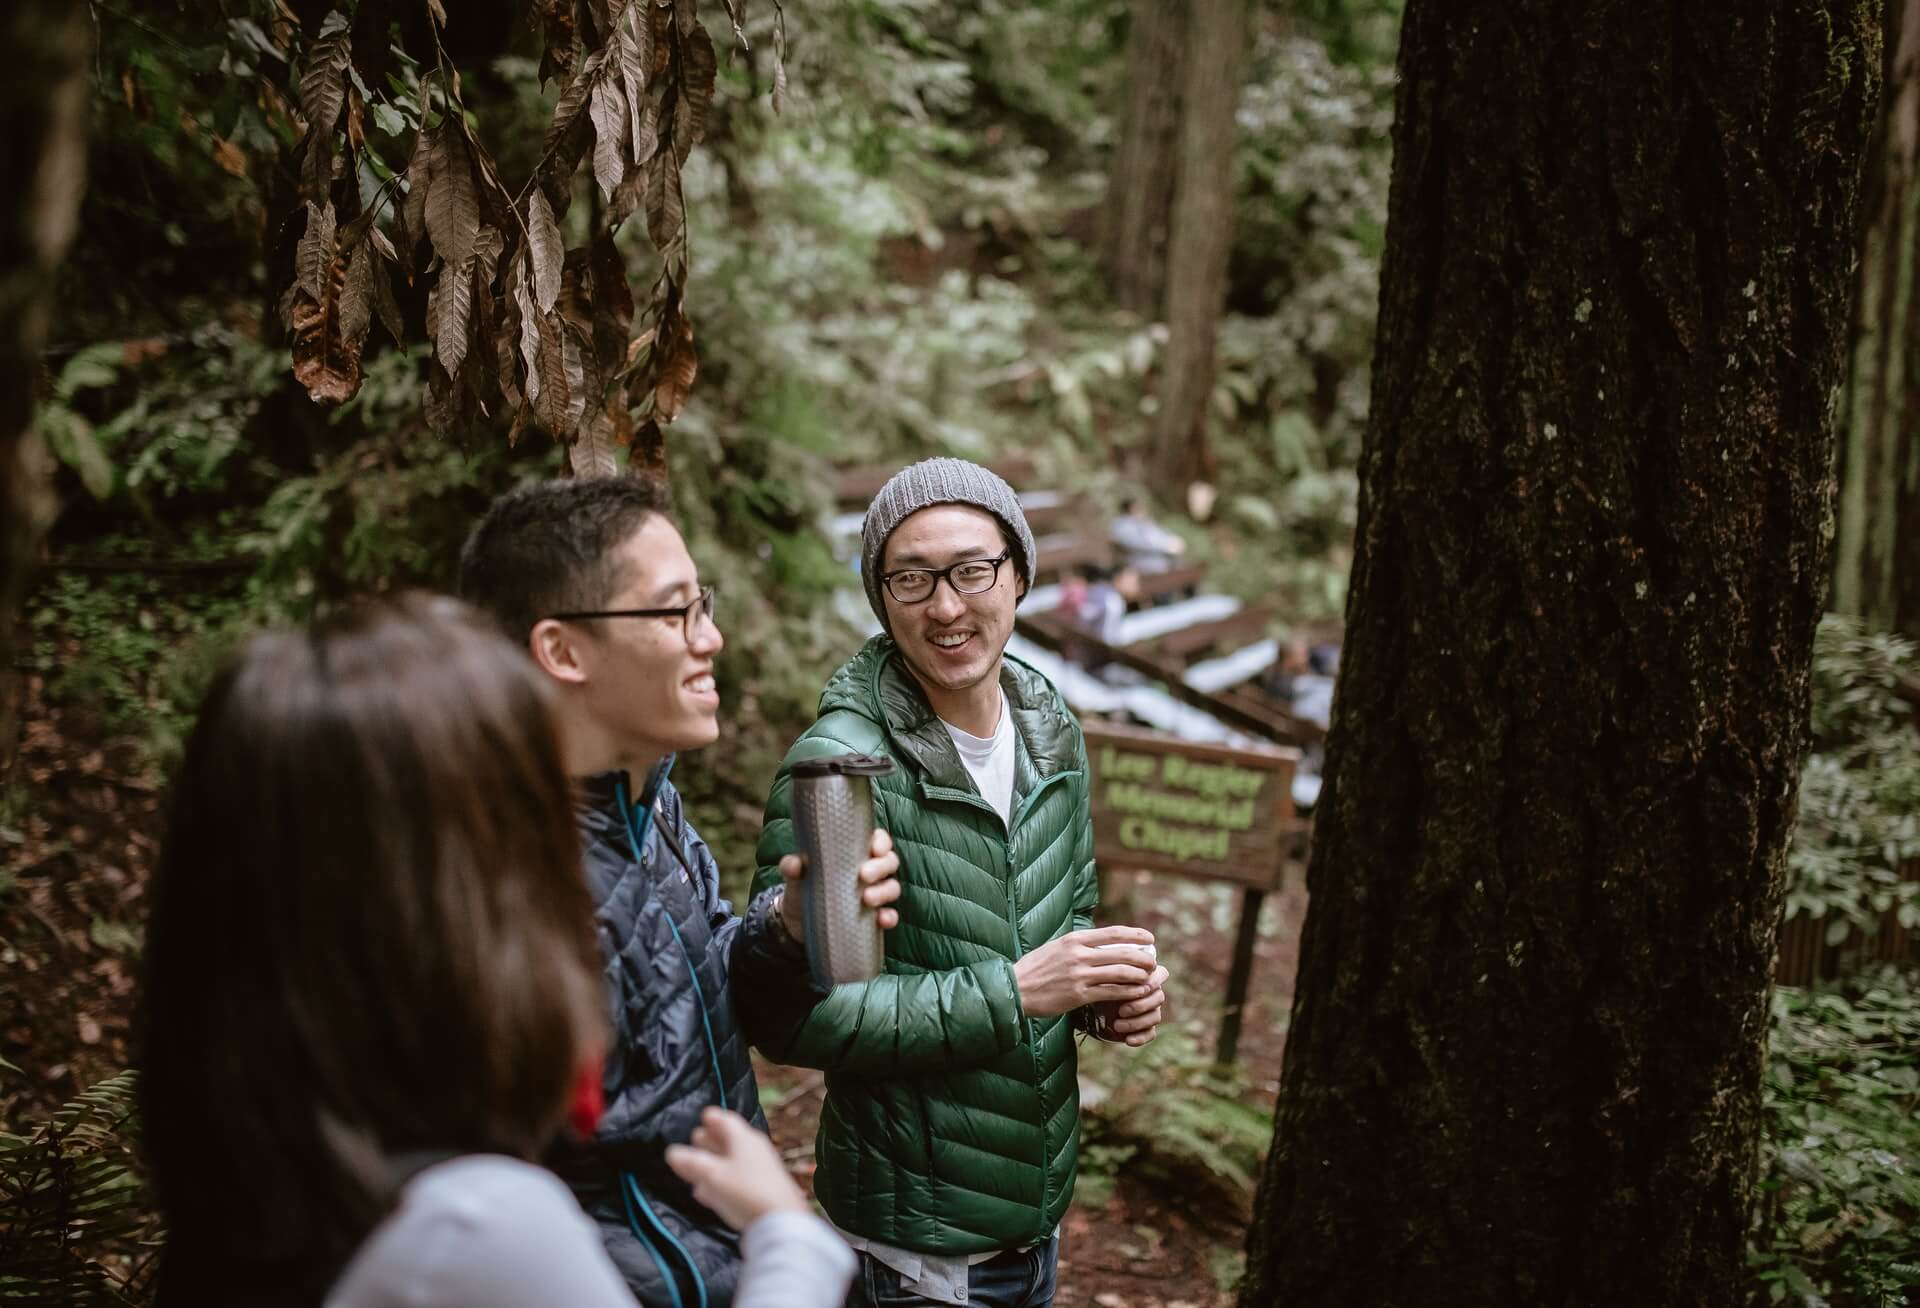 Three people in outdoor apparel laugh in a forest.